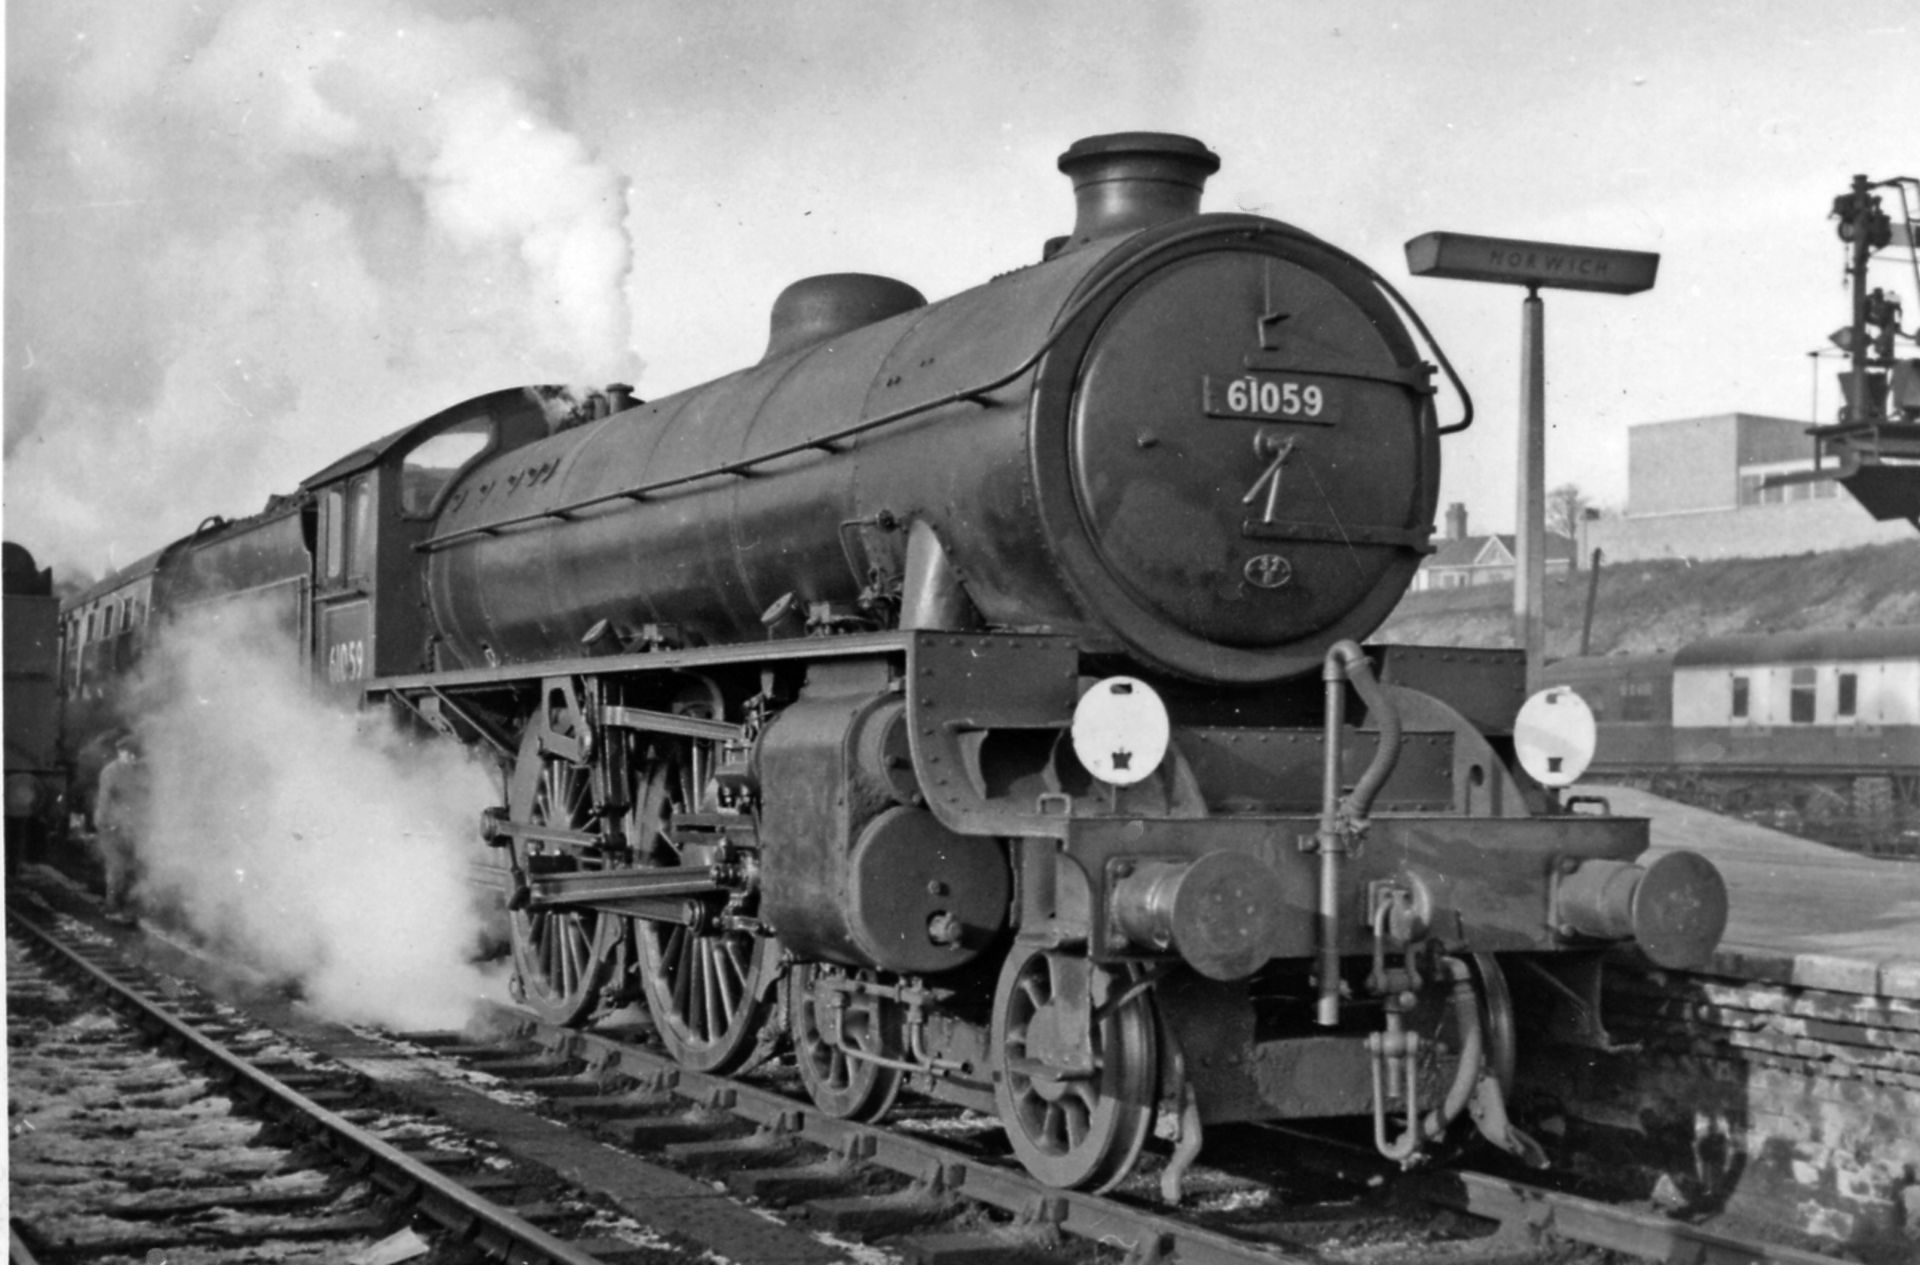 61059 at Norwich Thorpe in January 1958. © Ben Brooksbank